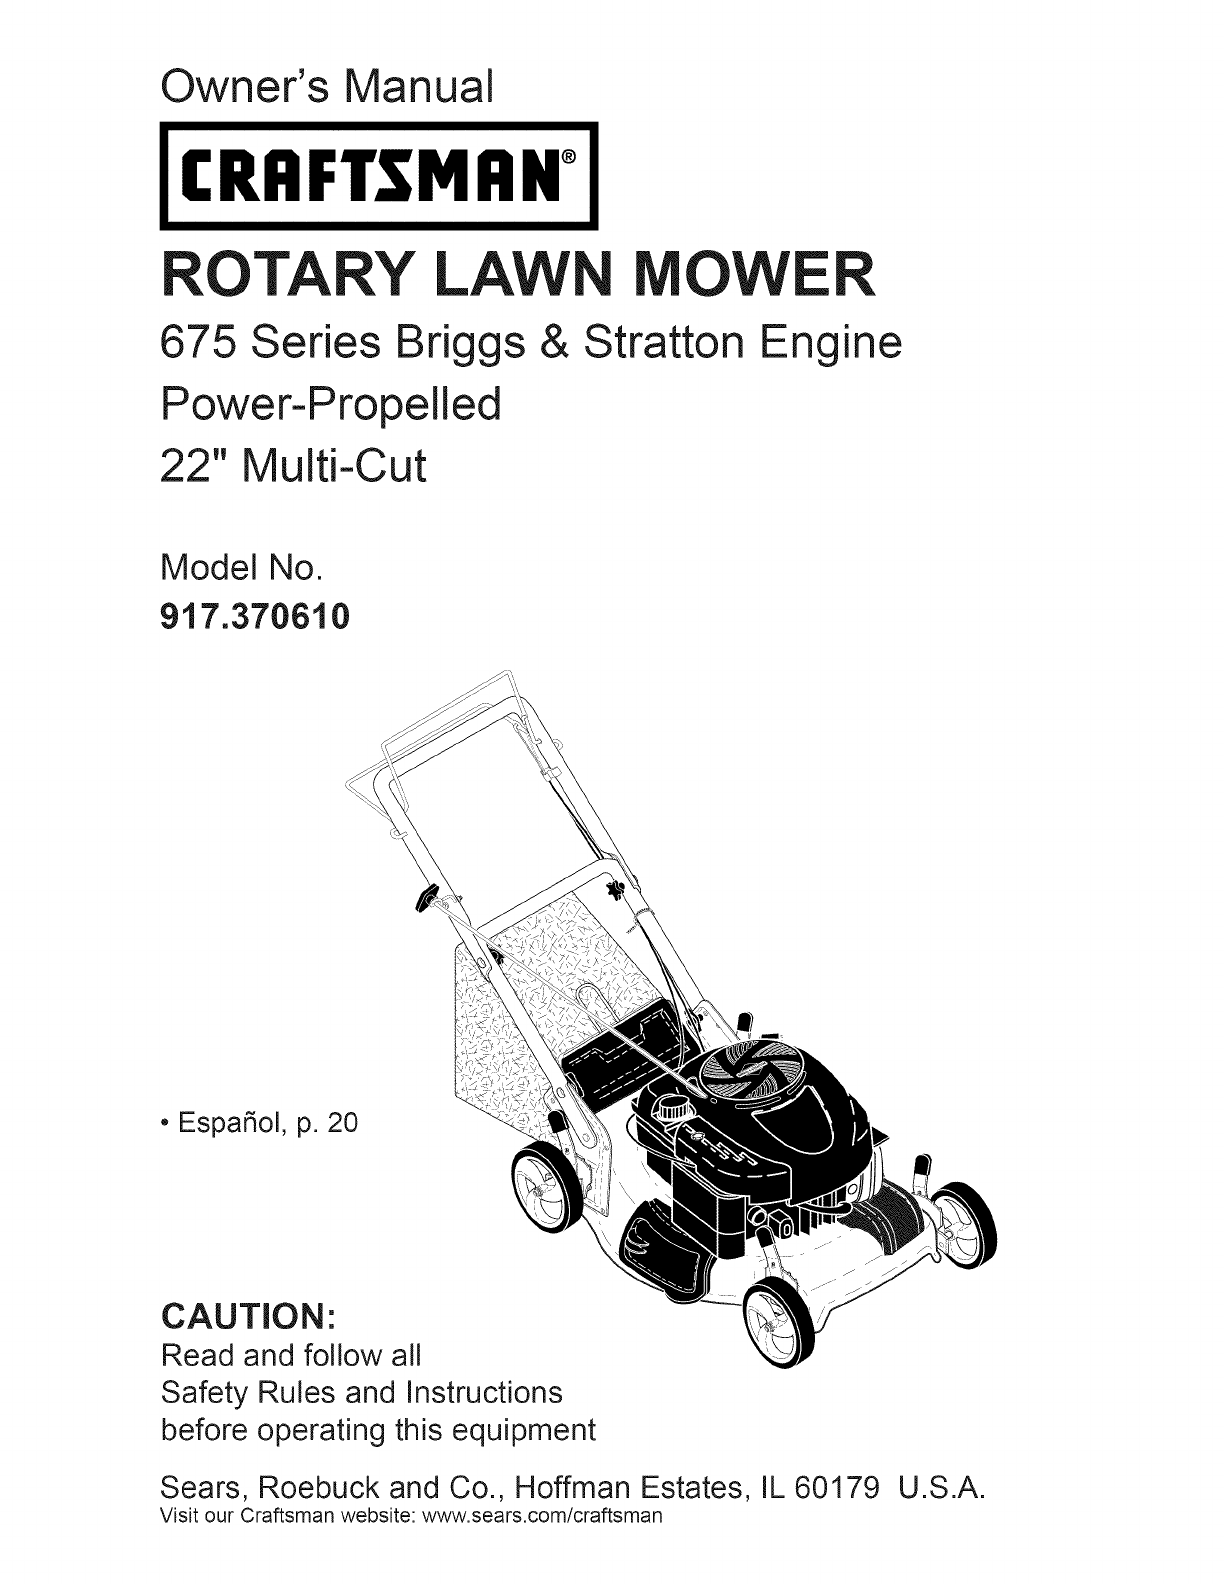 Craftsman lawn mower 37061 user guide manualsonline fandeluxe Image collections